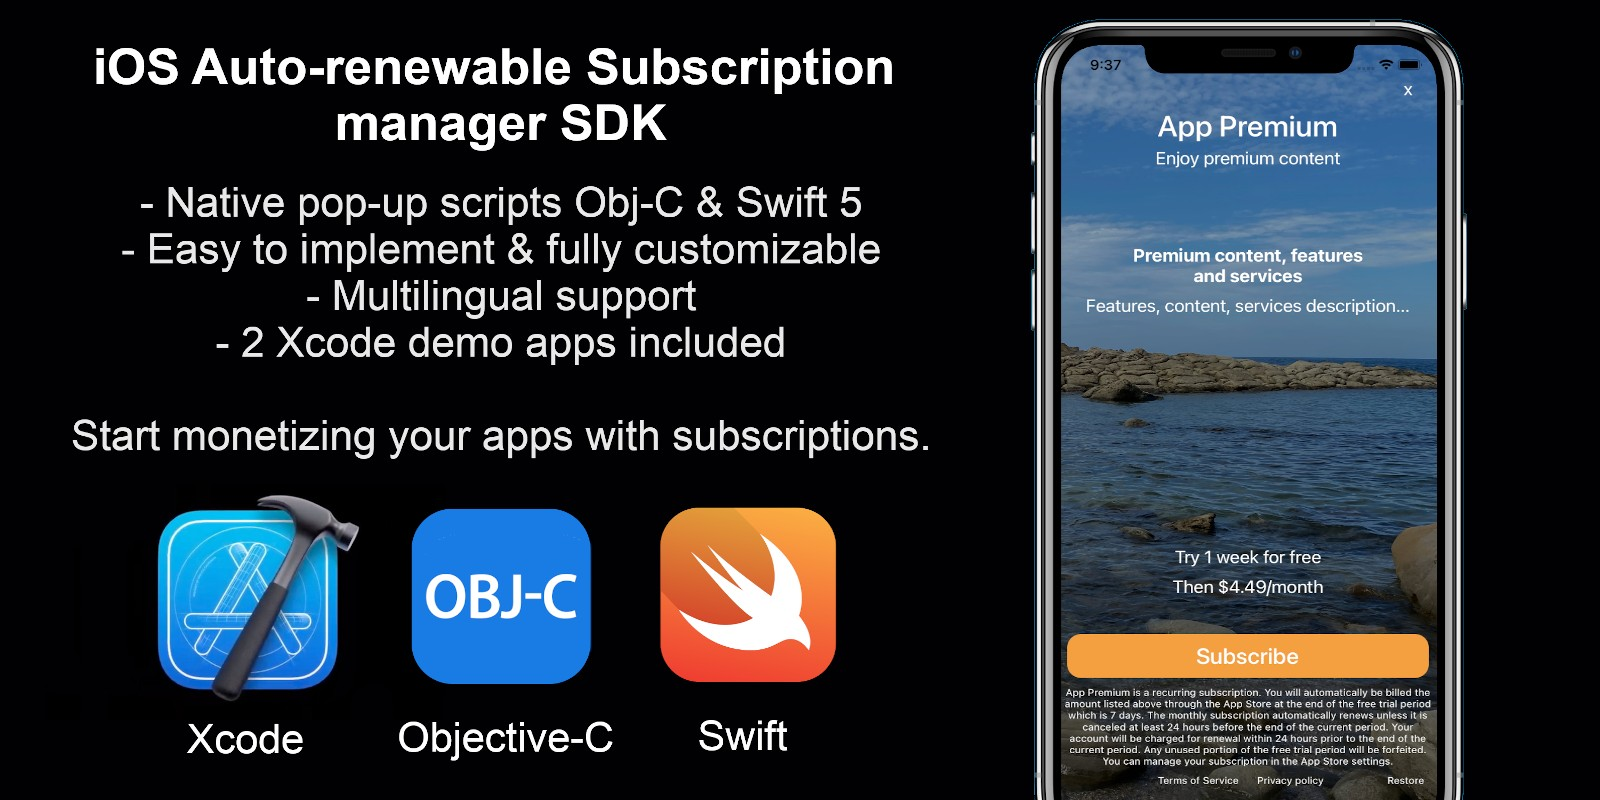 iOS Auto-renewable Subscription manager SDK